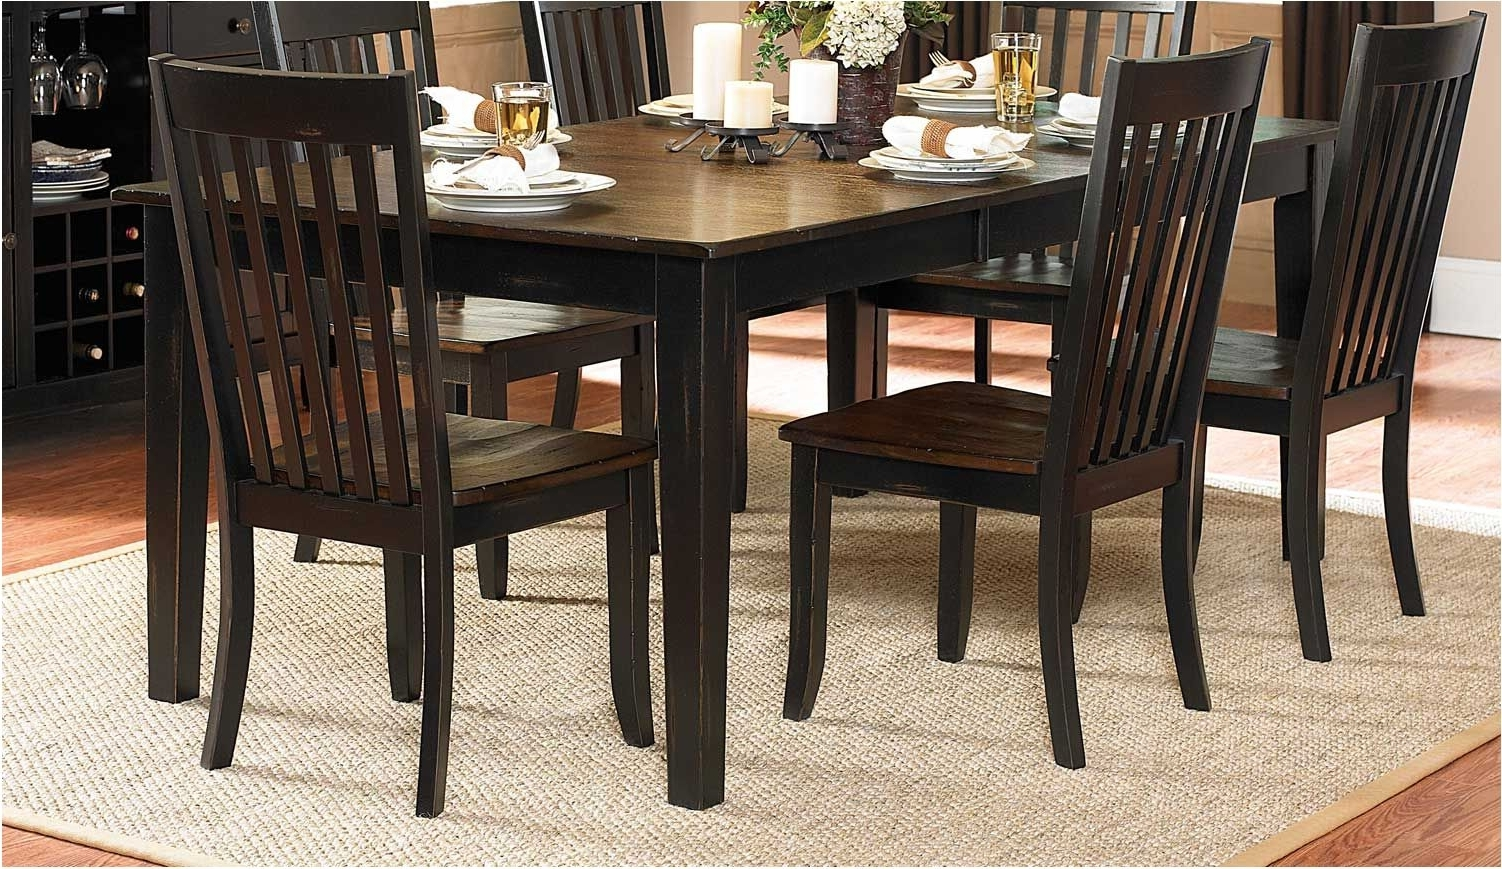 Great Kitchen Large Wooden Dining Table Black Leather Seat Bench Pertaining To Favorite Dark Brown Wood Dining Tables (Gallery 3 of 25)